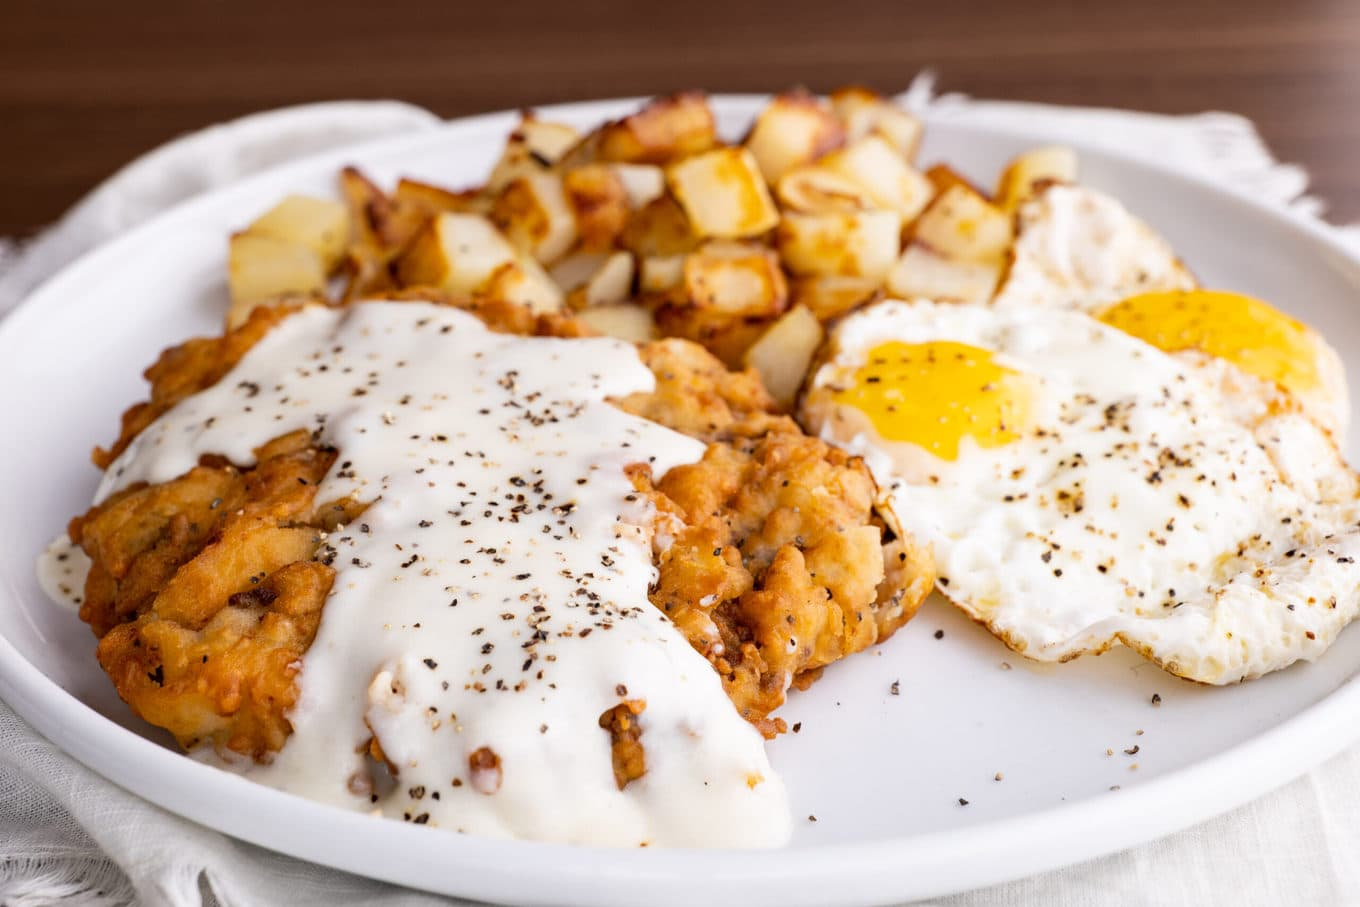 Chicken Fried Steak on plate with eggs and hash browns